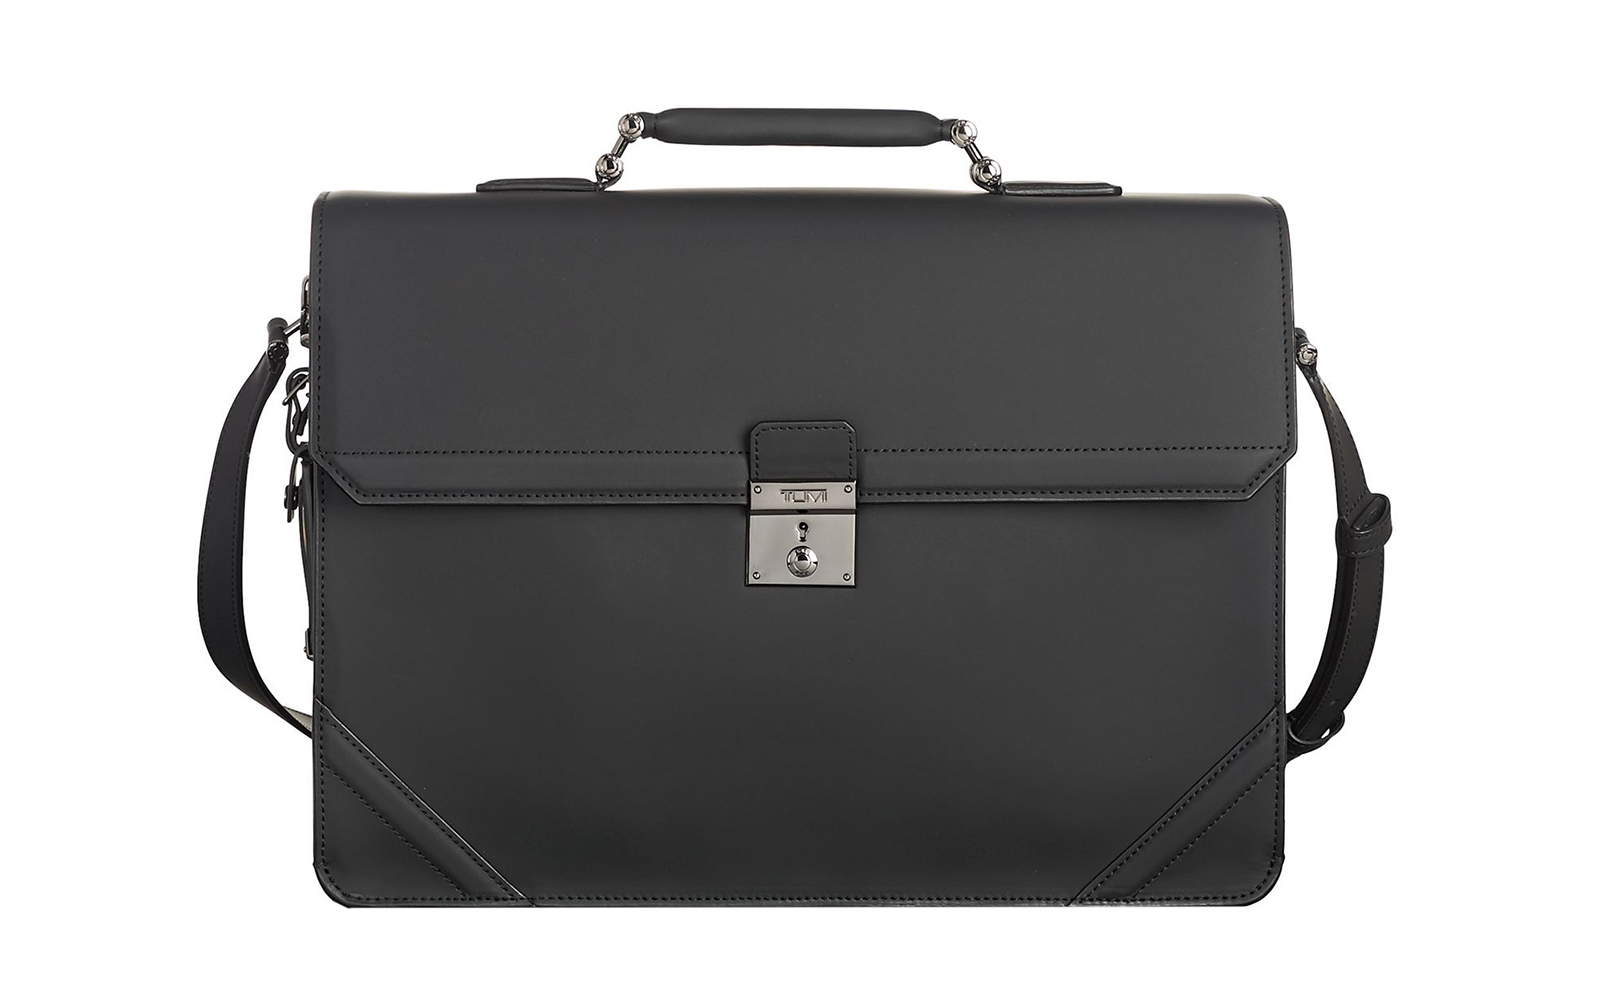 Palmer Flap Brief Leather